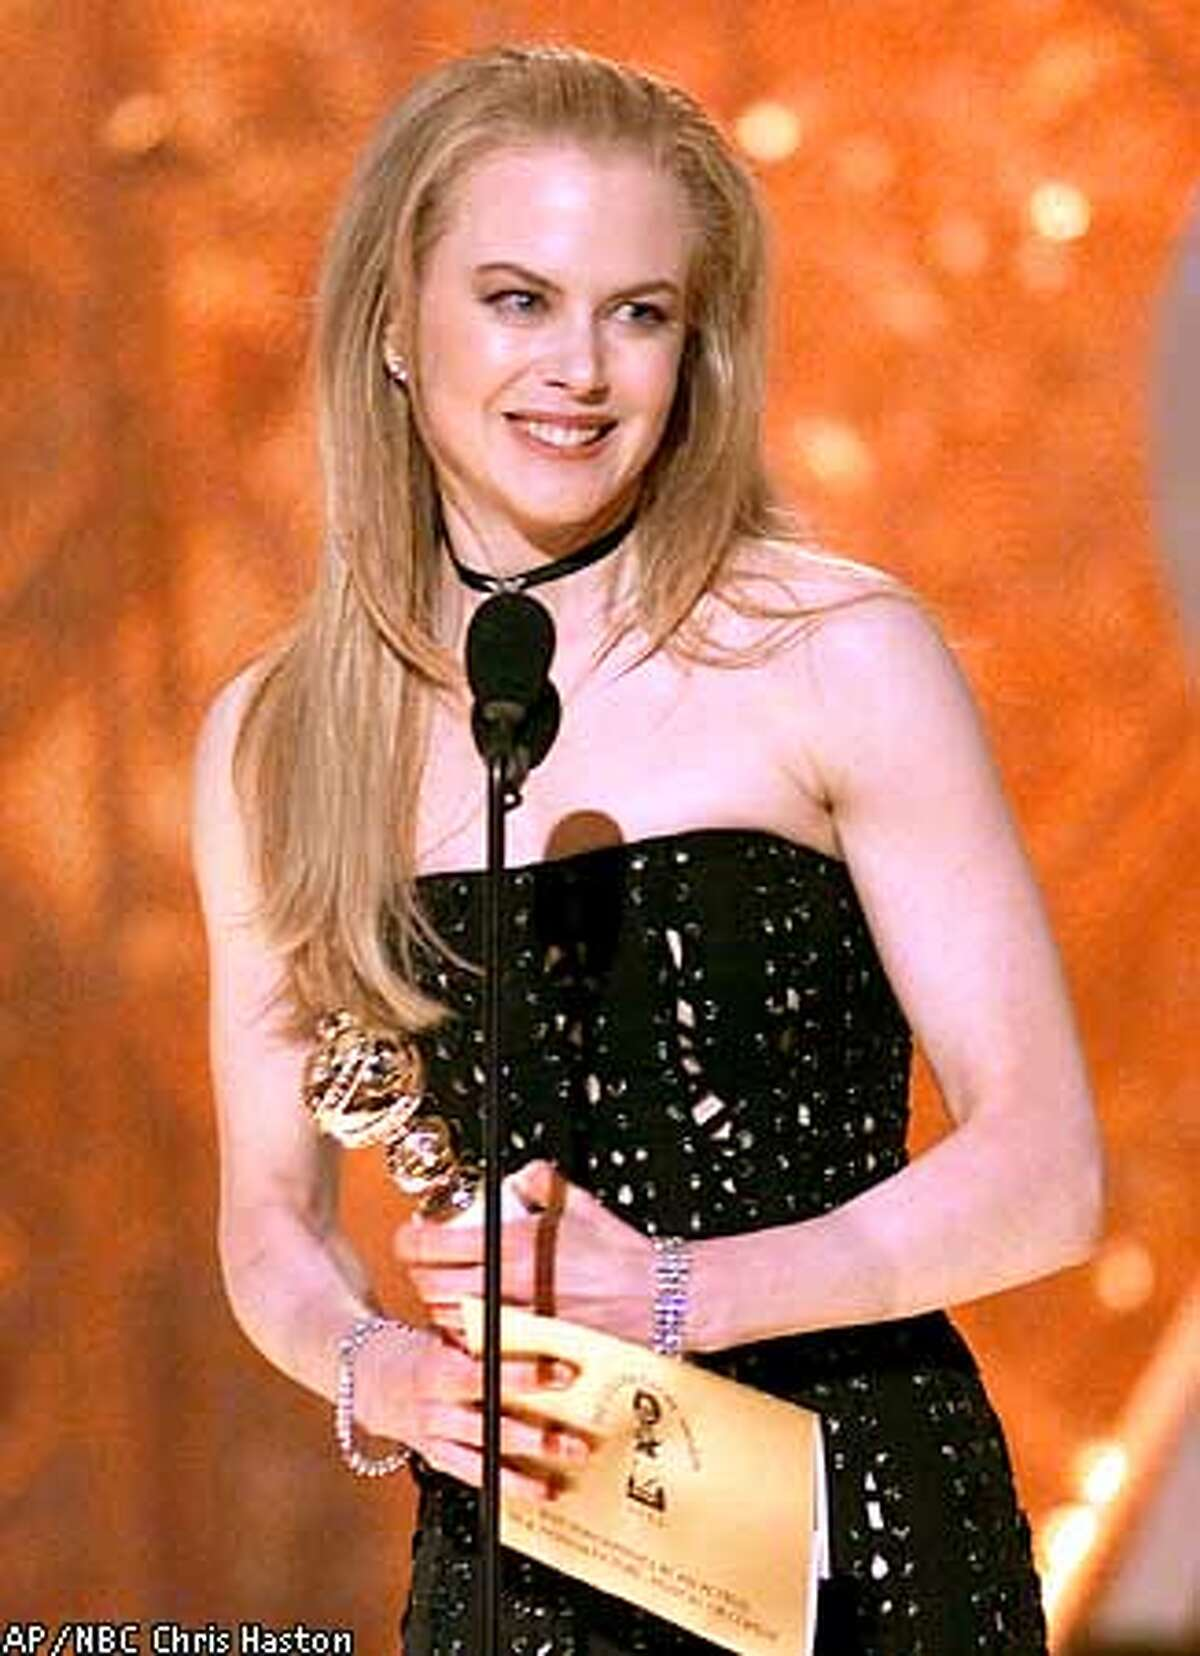 """EMBARGOED AT THE REQUEST OF THE HOLLYWOOD FOREIGN PRESS ASSOCIATION AND DICK CLARK PRODUCTIONS FOR USE UPON CONCLUSION OF THE GOLDEN GLOBE AWARDS LIVE TELECAST AT 11:00 PM EST--Actress Nicole Kidman accepts her award for best performance by an actress in a motion picture comedy or musical for her work in """"Moulin Rouge!,"""" at the 59th Annual Golden Globe Awards in Beverly Hills, Calif., Sunday, Jan. 20, 2002. (AP Photo/NBC, Chris Haston)"""